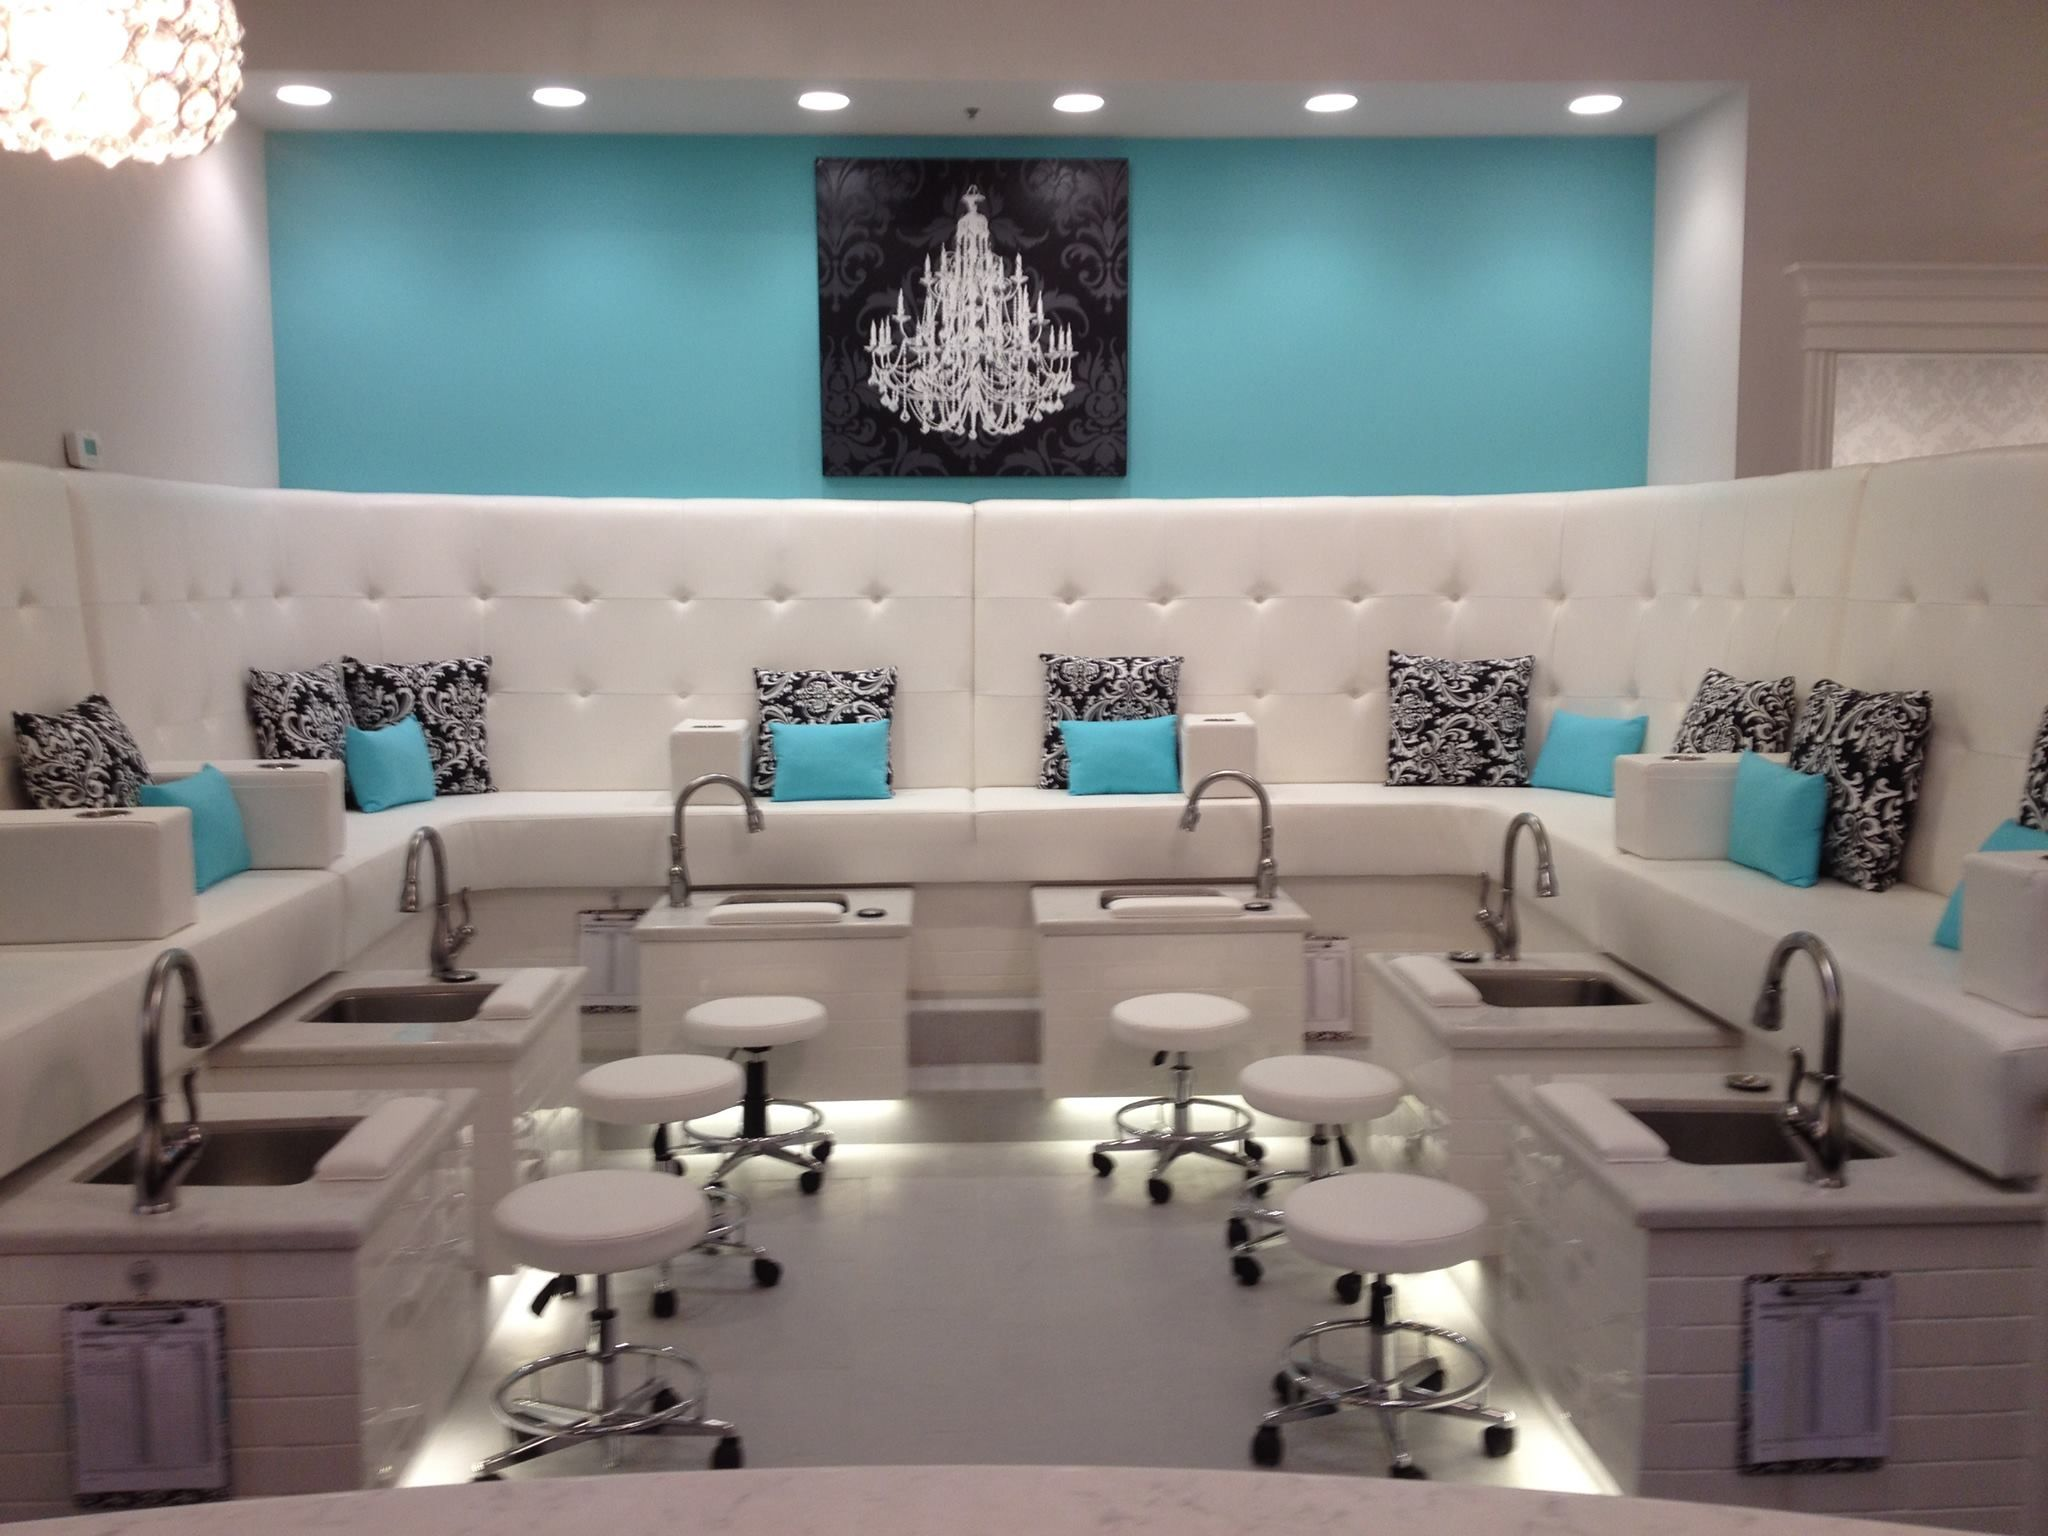 Pedicure | dream salon/ spa | Pinterest | Pedicures, Salons and ...